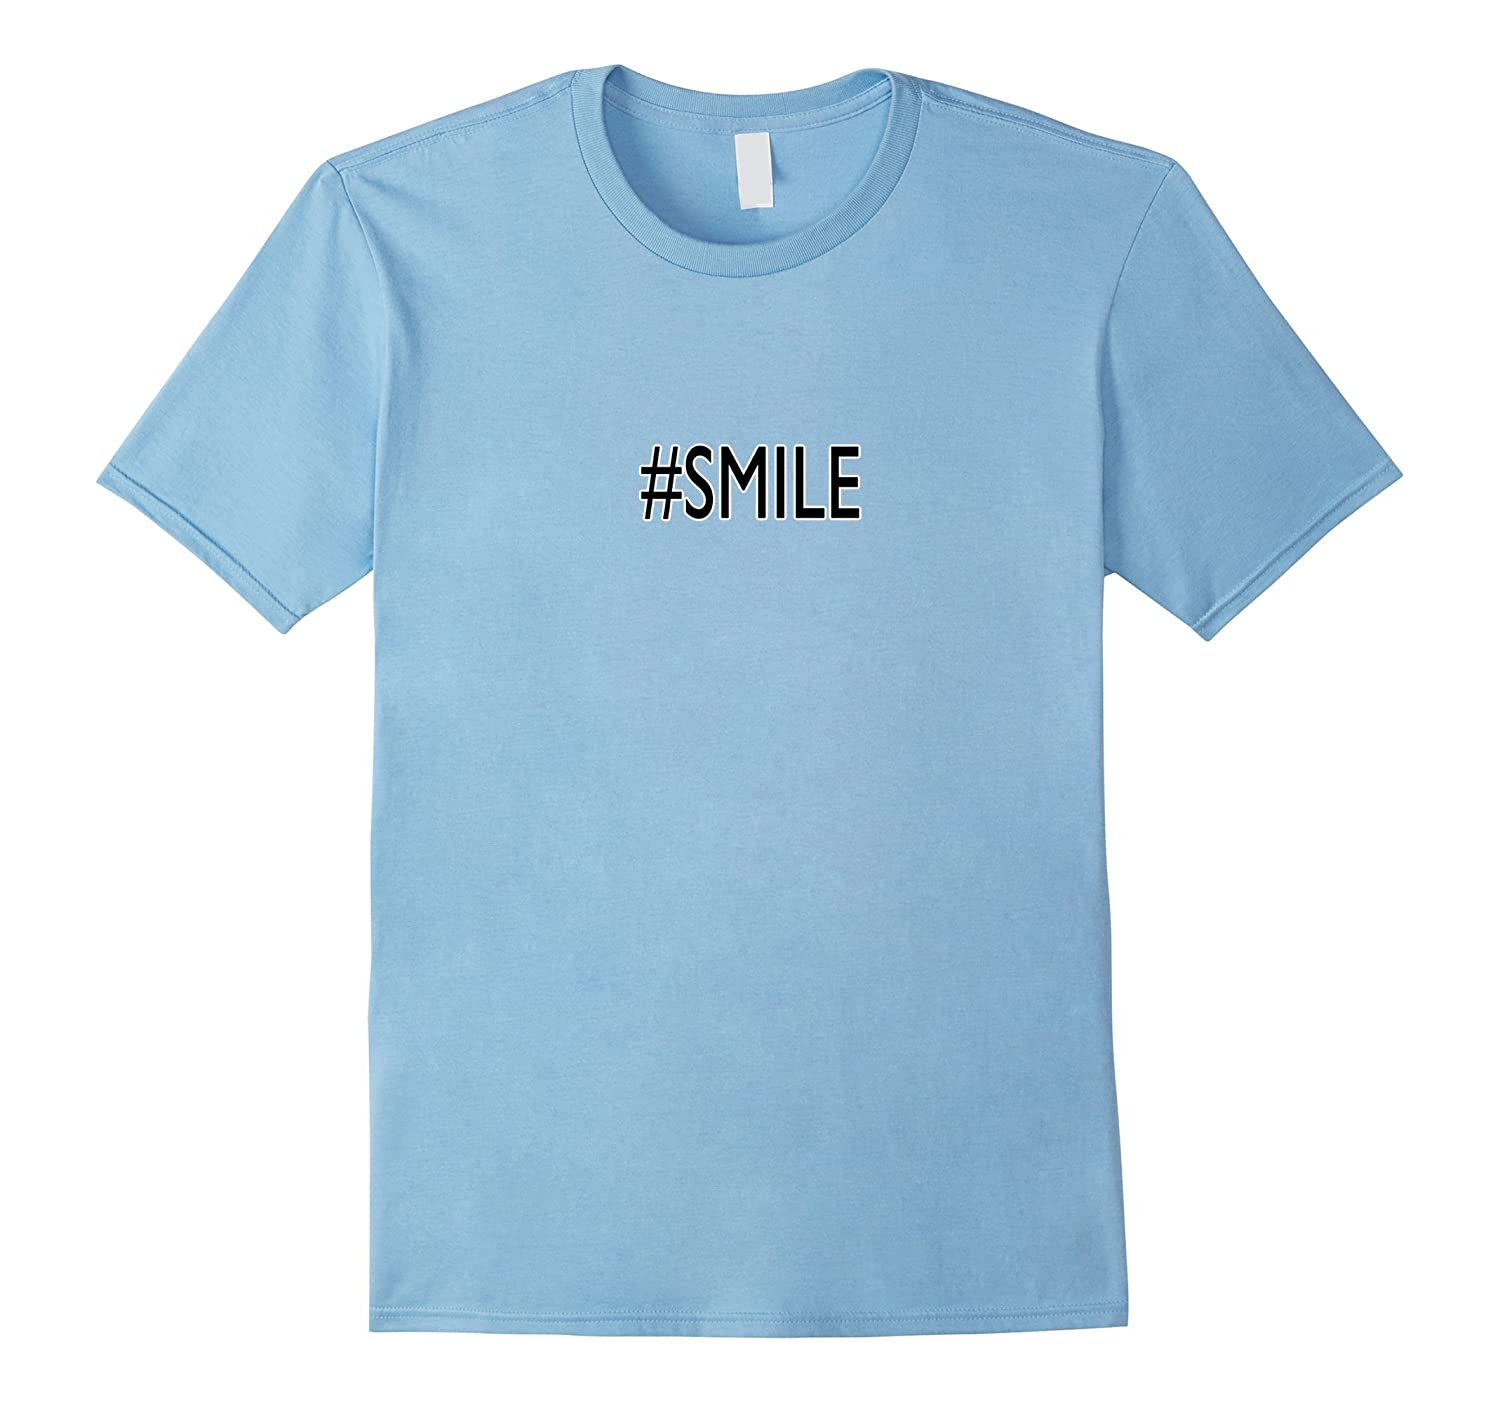 #Smile Shirt SMILE T SHIRT TOP HAPPY PLACE GOOD DAY-4LVS